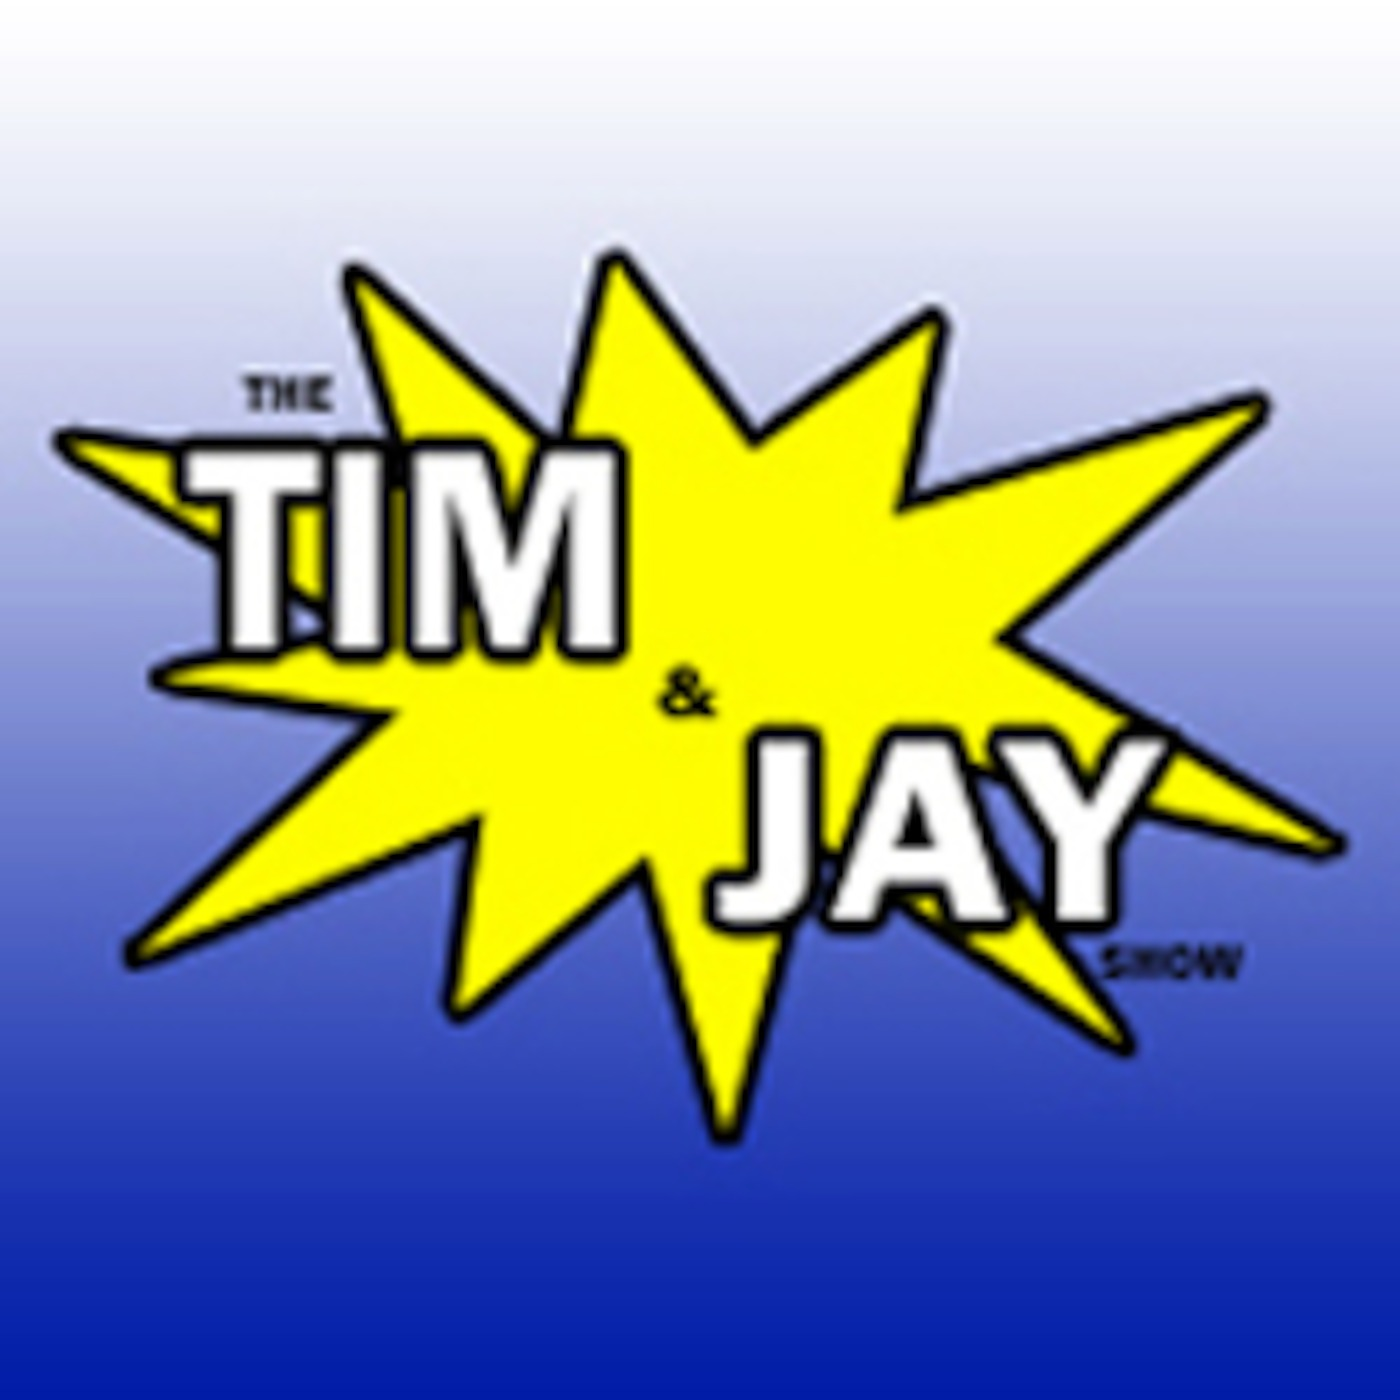 The Tim and Jay Show